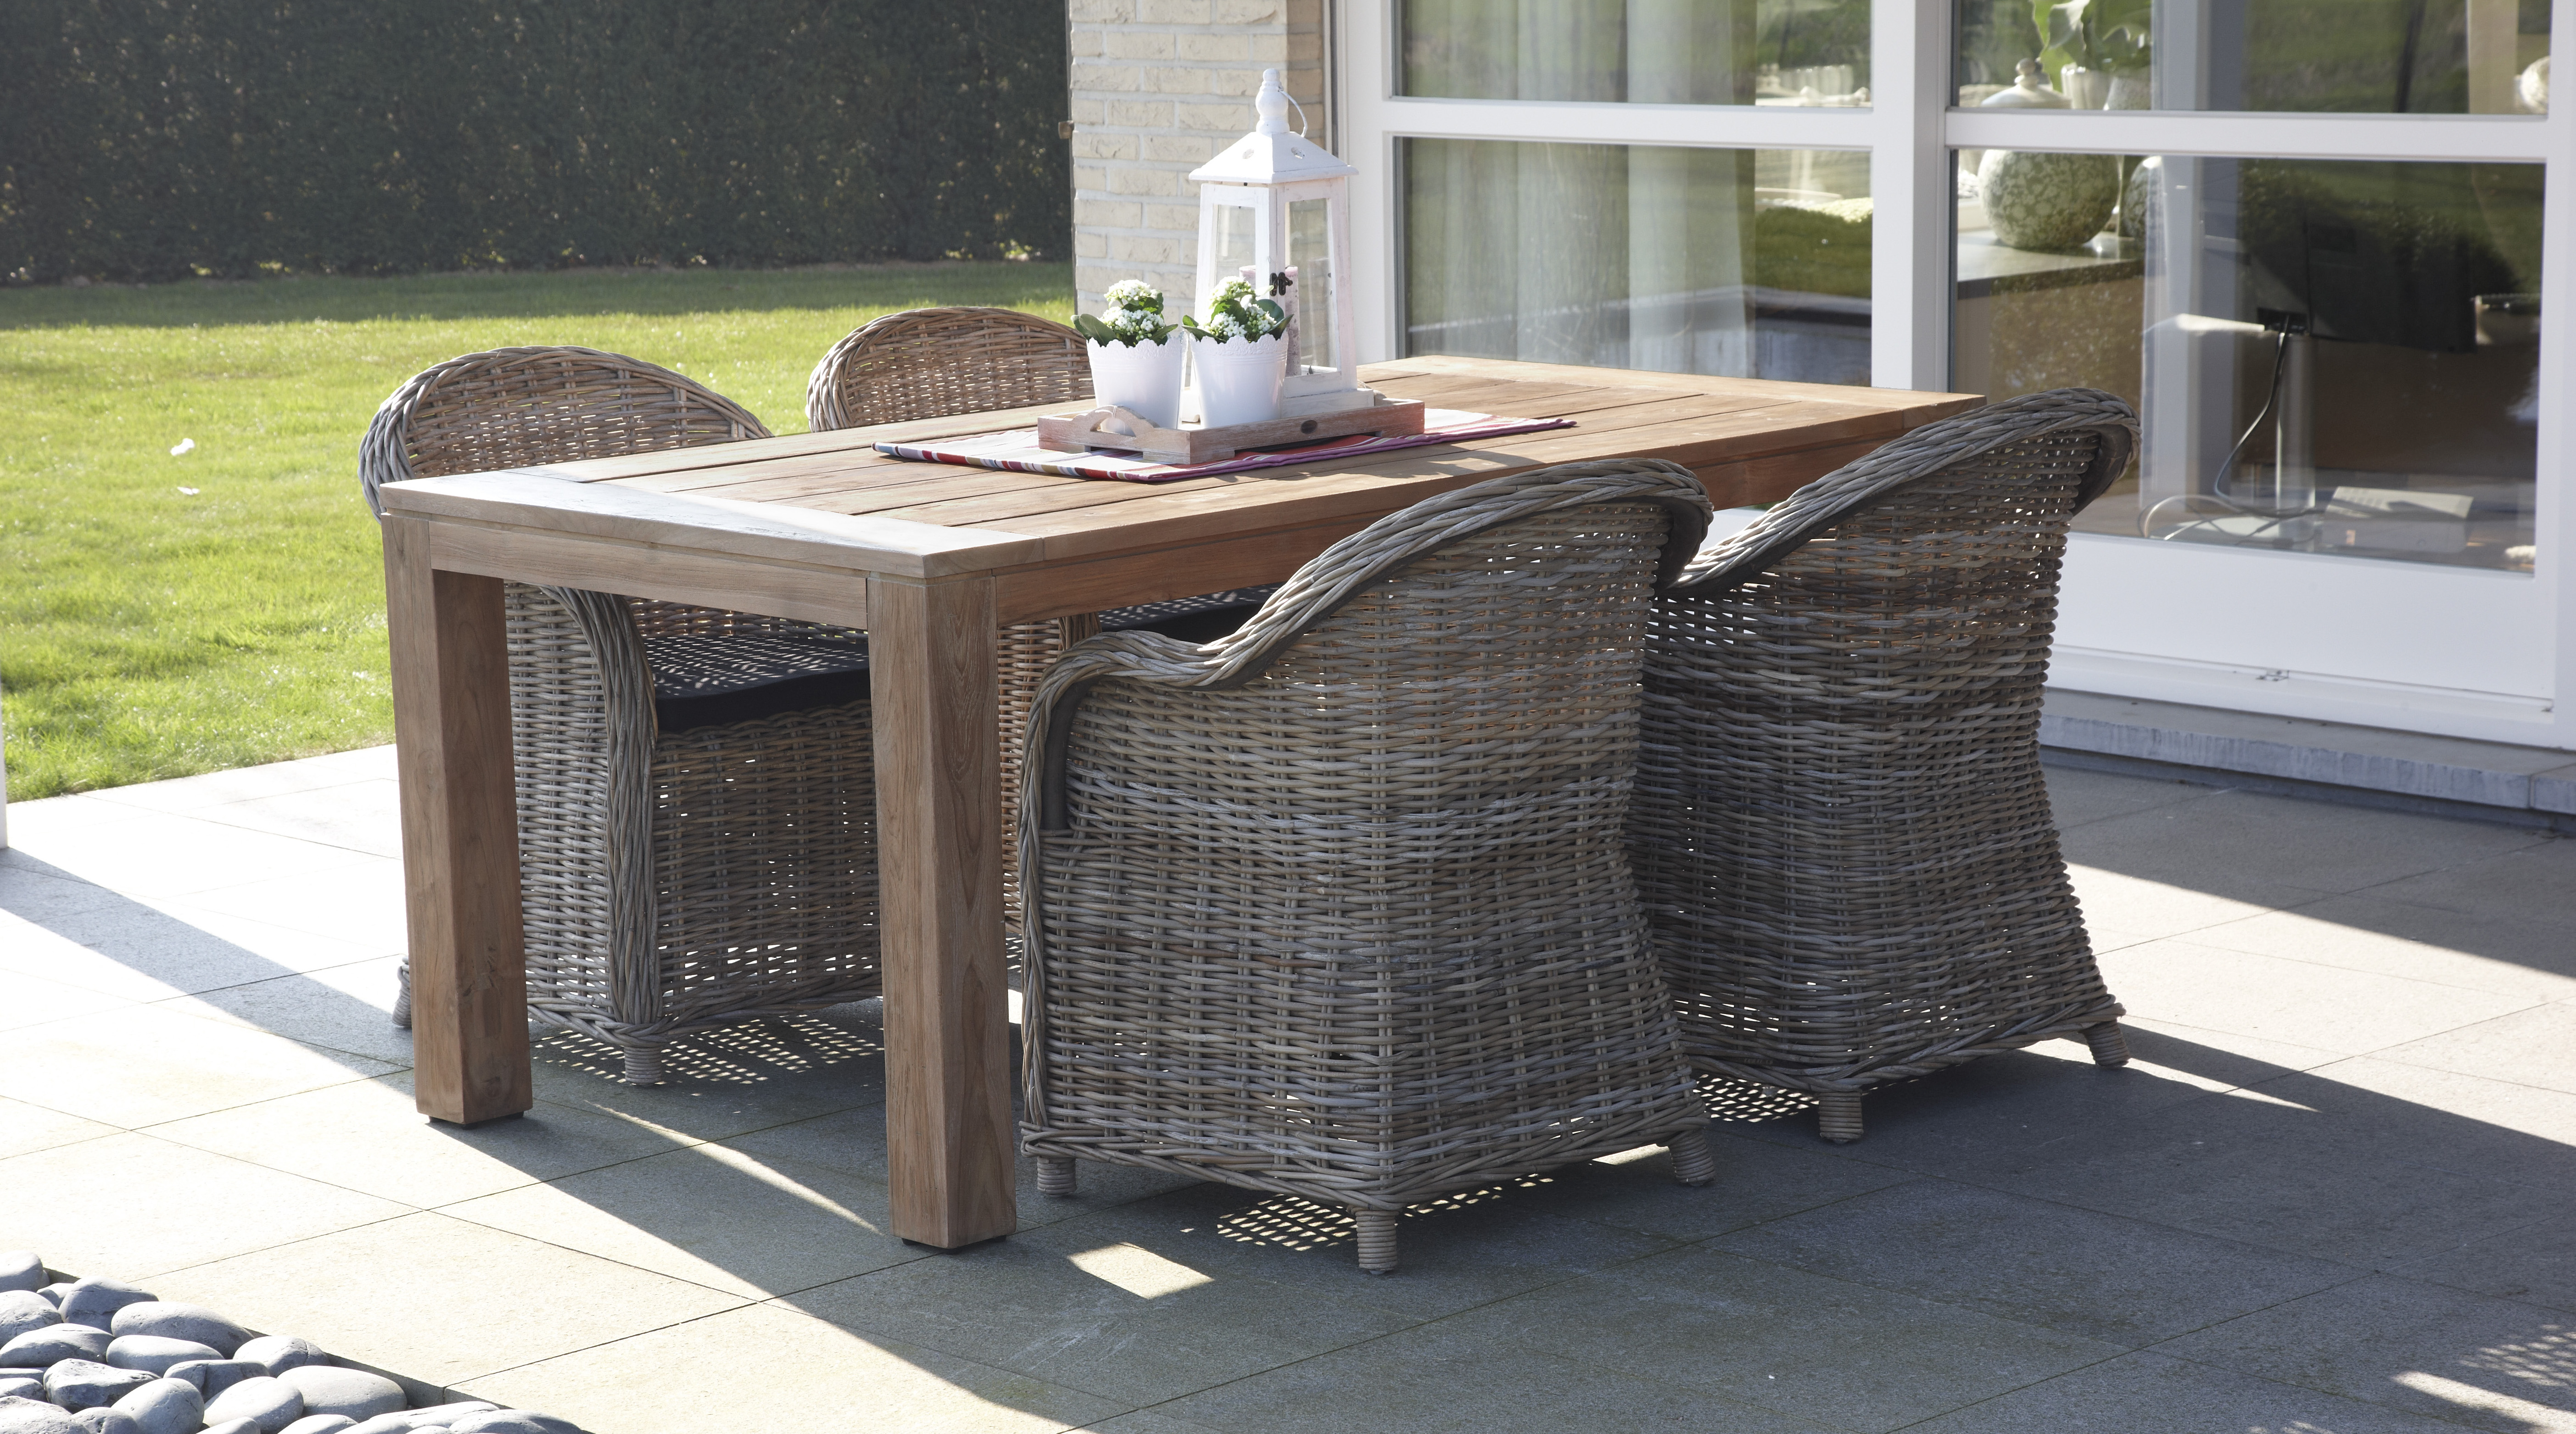 Aspen Wicker Dining Chair Houston Couture Outdoor